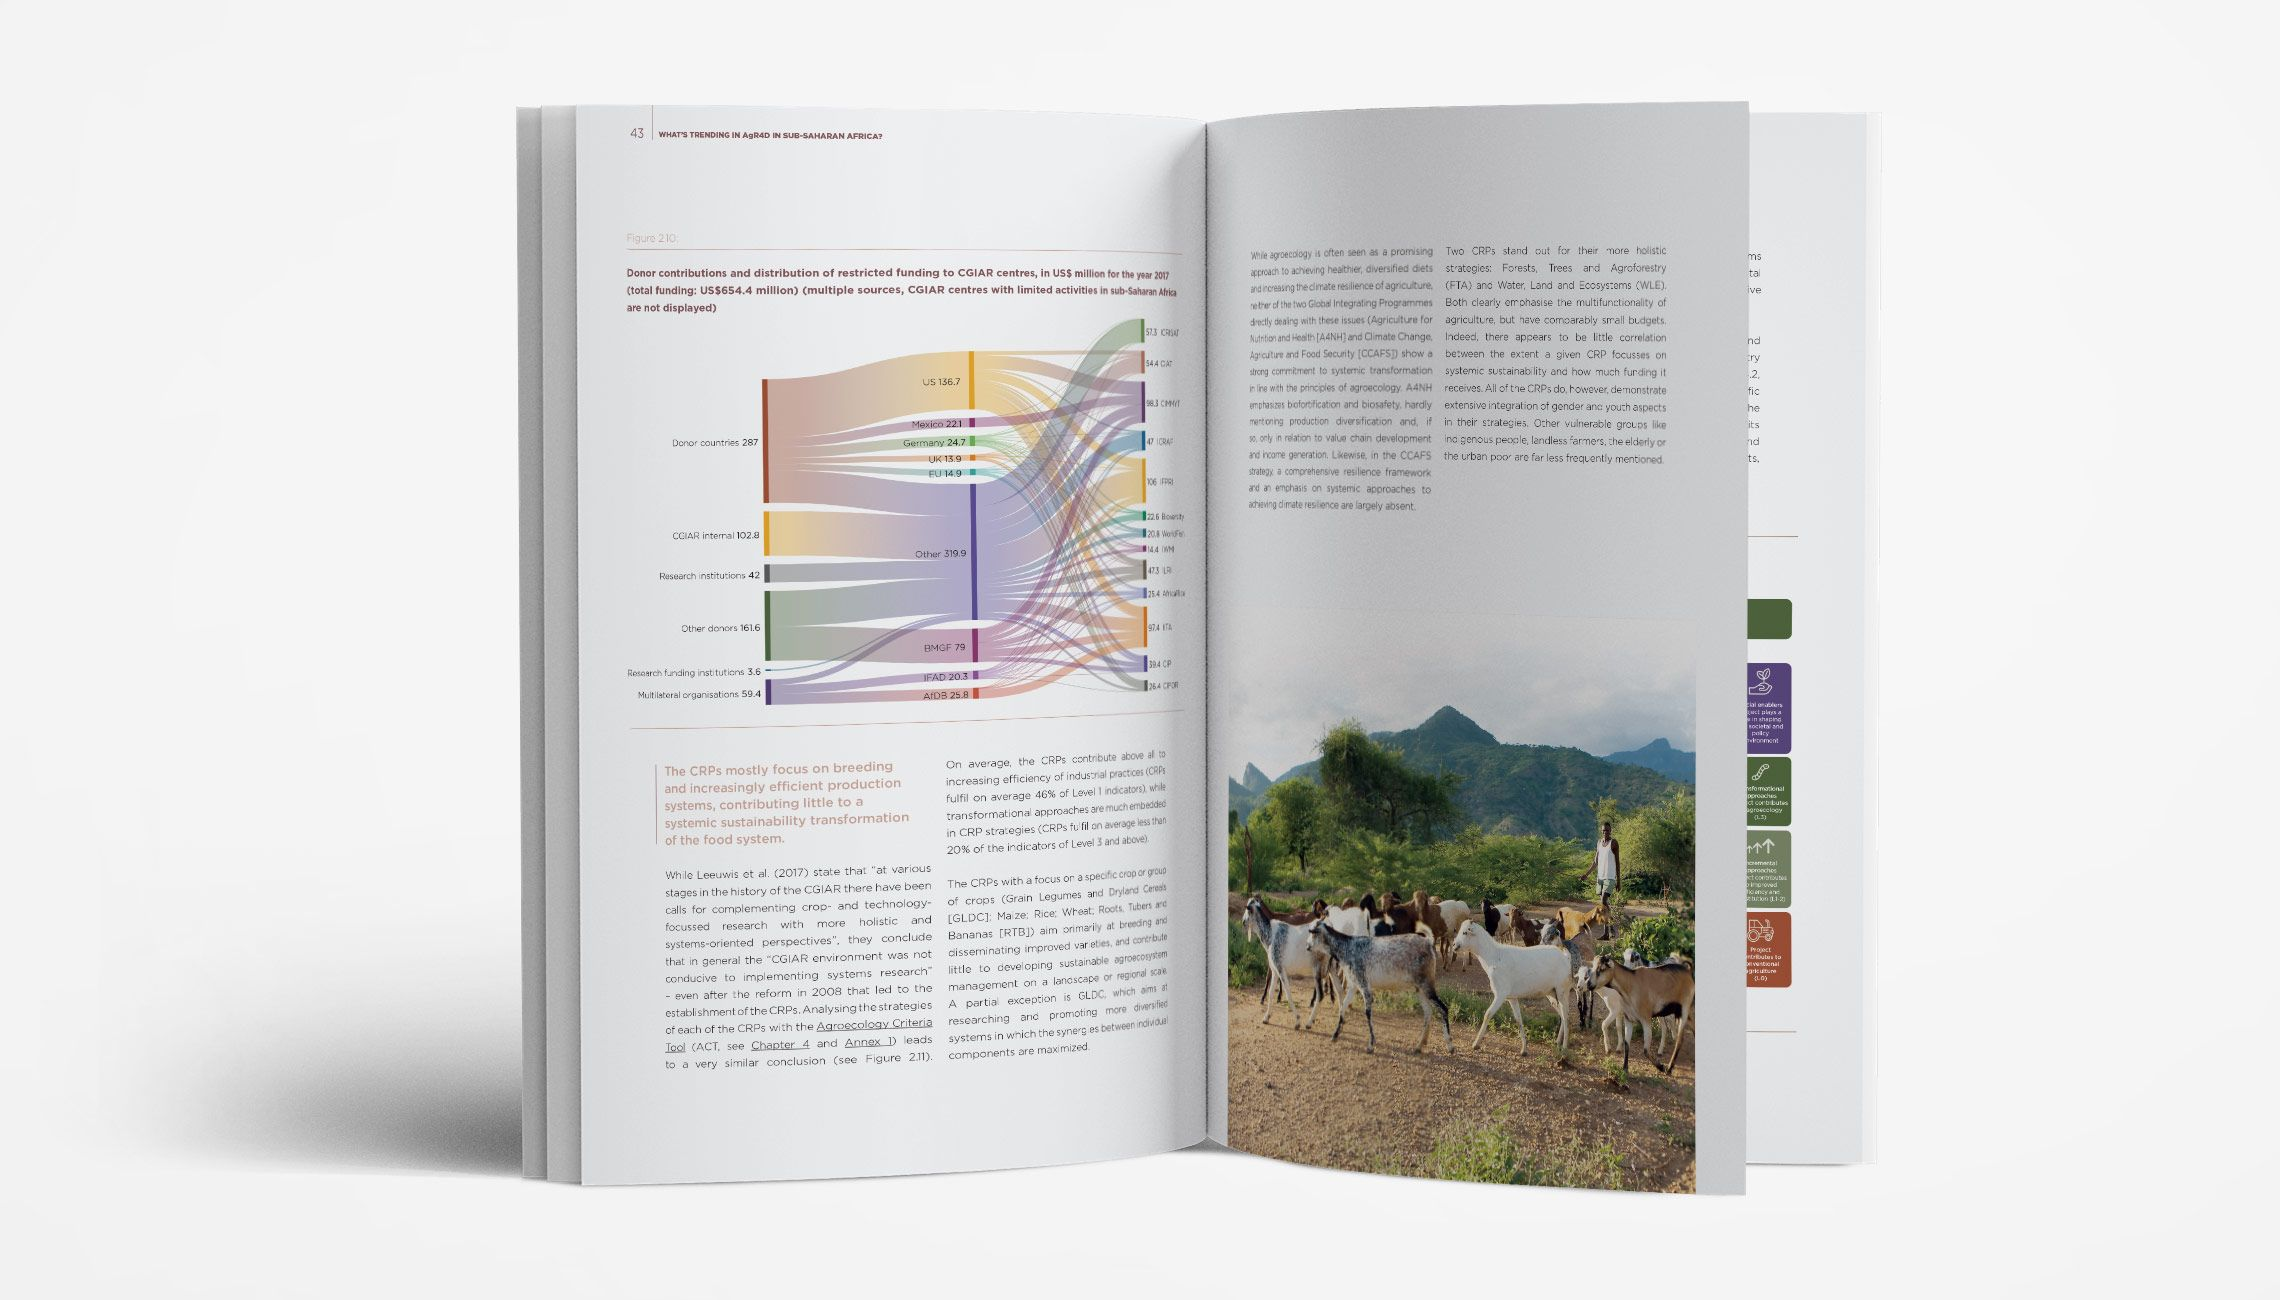 publication: IPES FOOD and BIOVISION Money Flows Report  - image 1